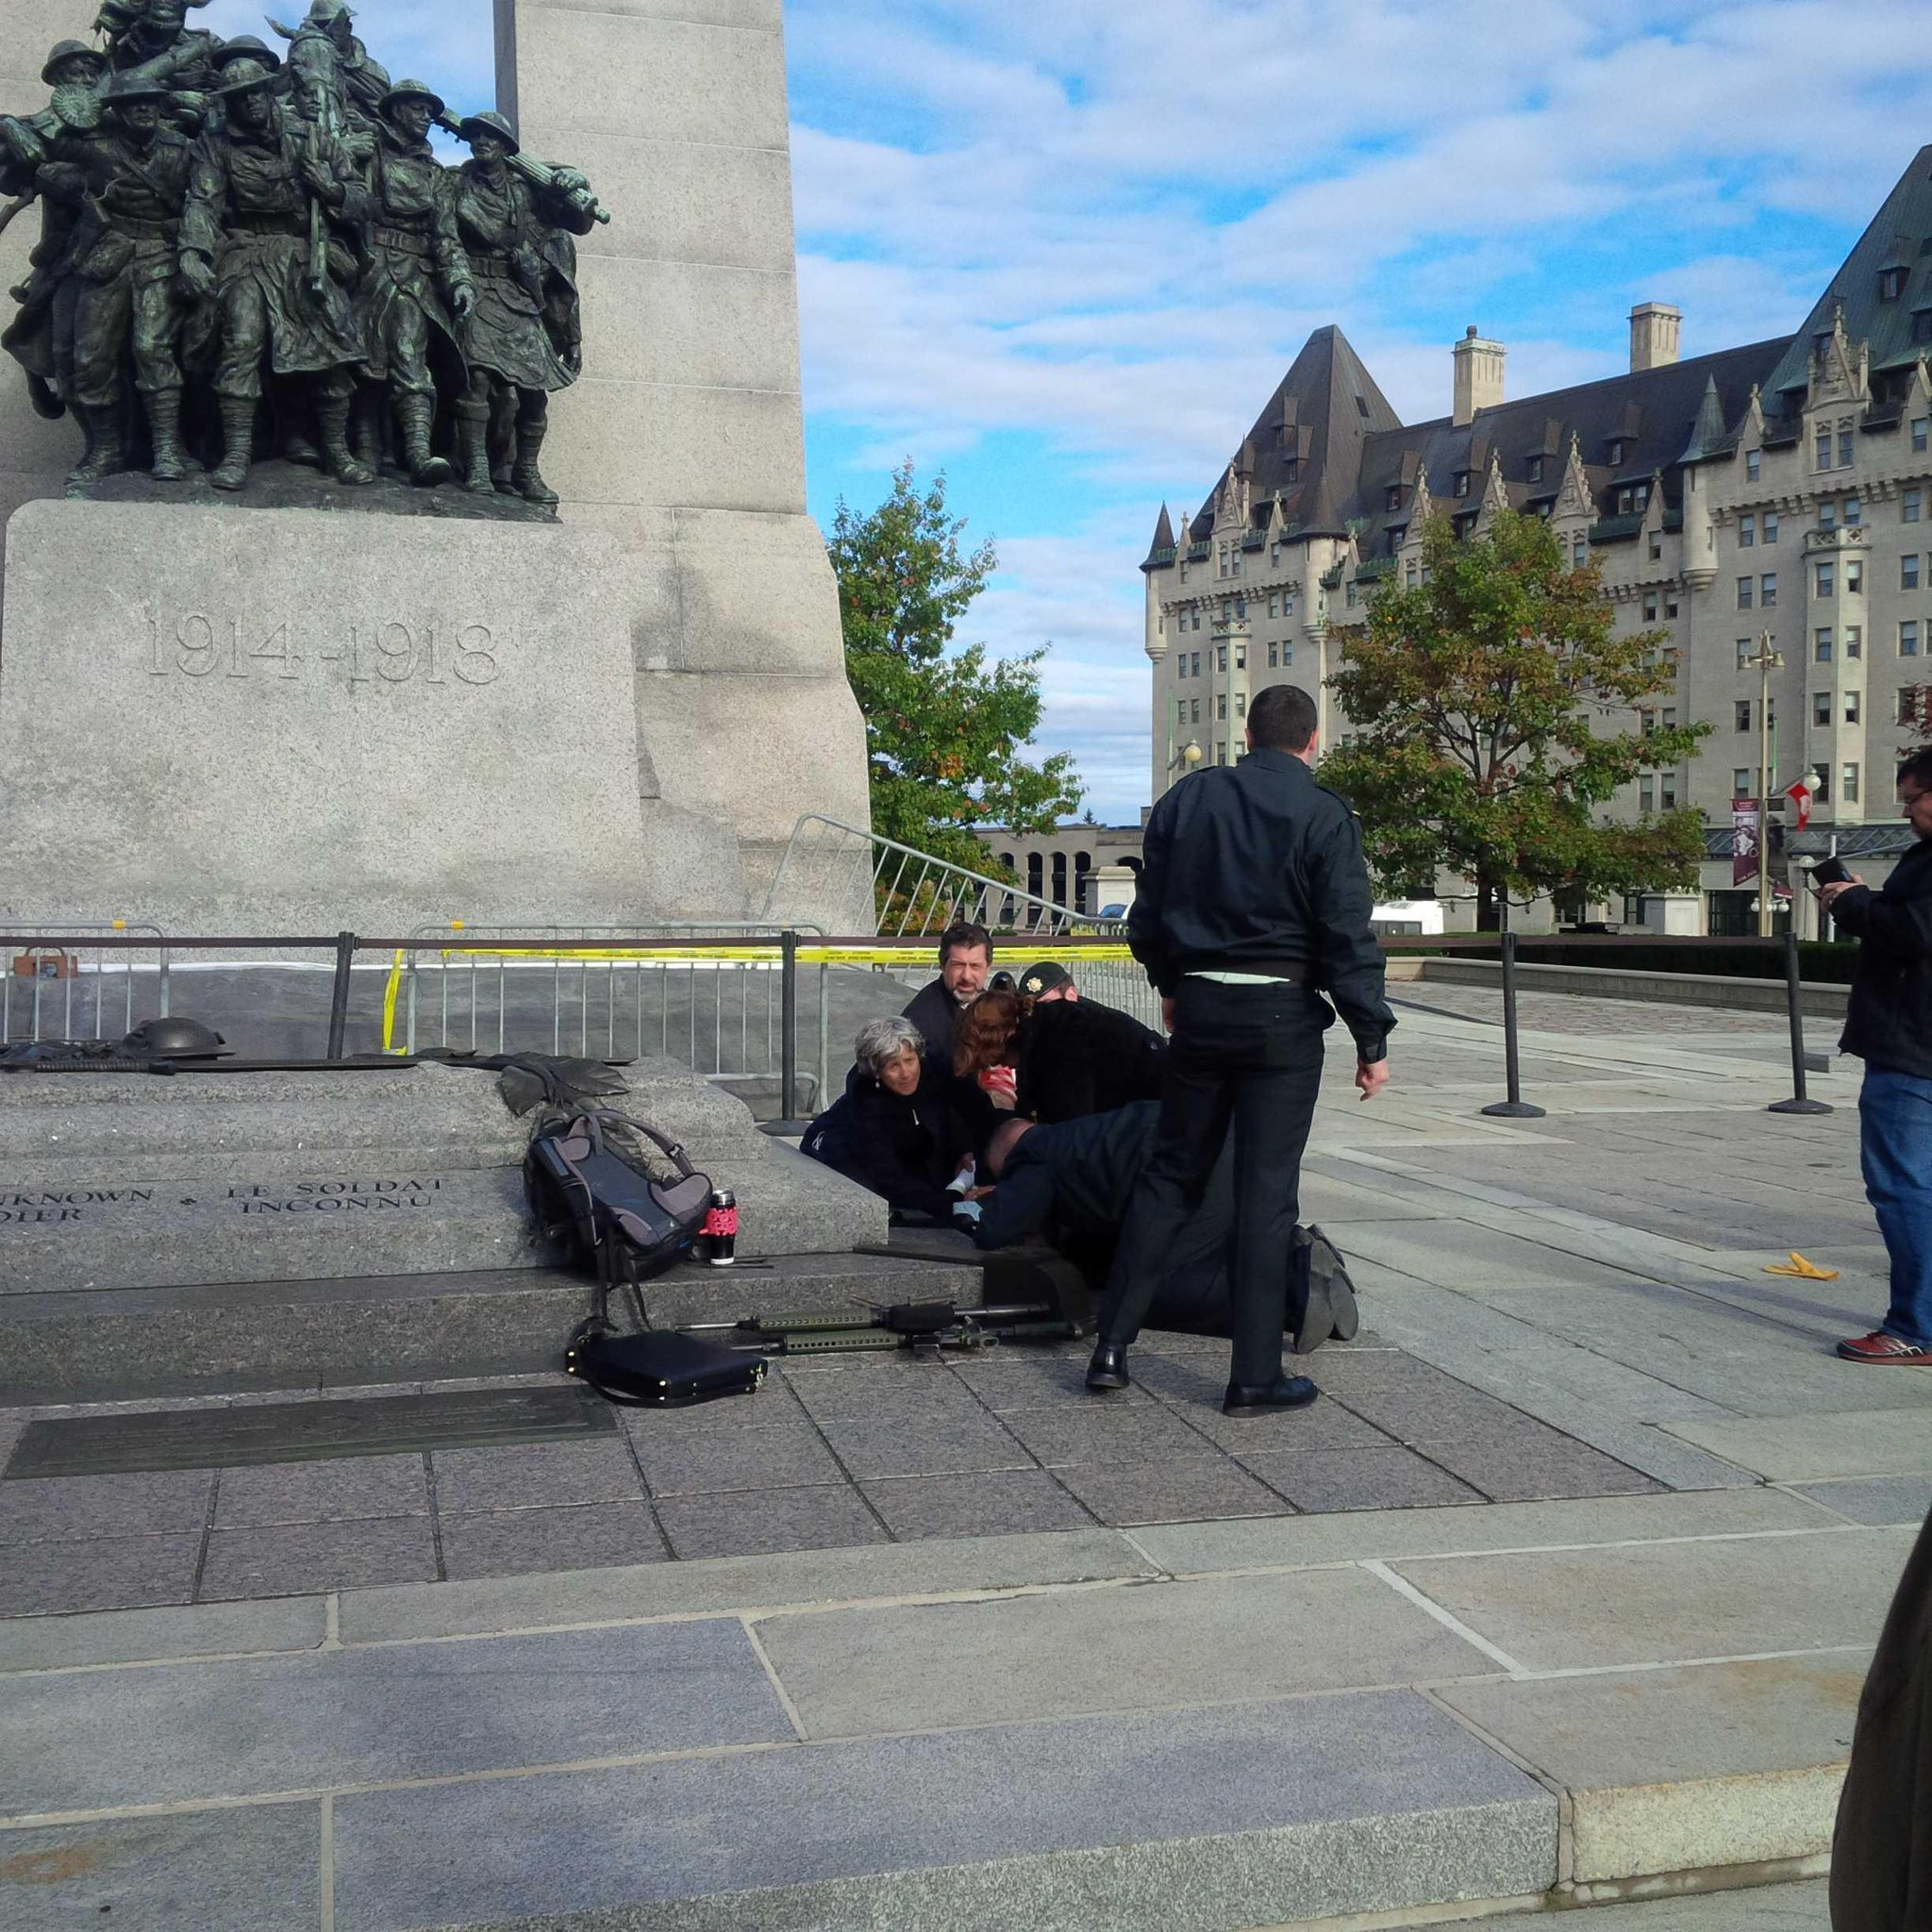 RT @evansolomoncbc: At the war memorial in. Ottawa. A soldier has been shot. They are giving him treatment now. #breaking http://t.co/cTmlb…